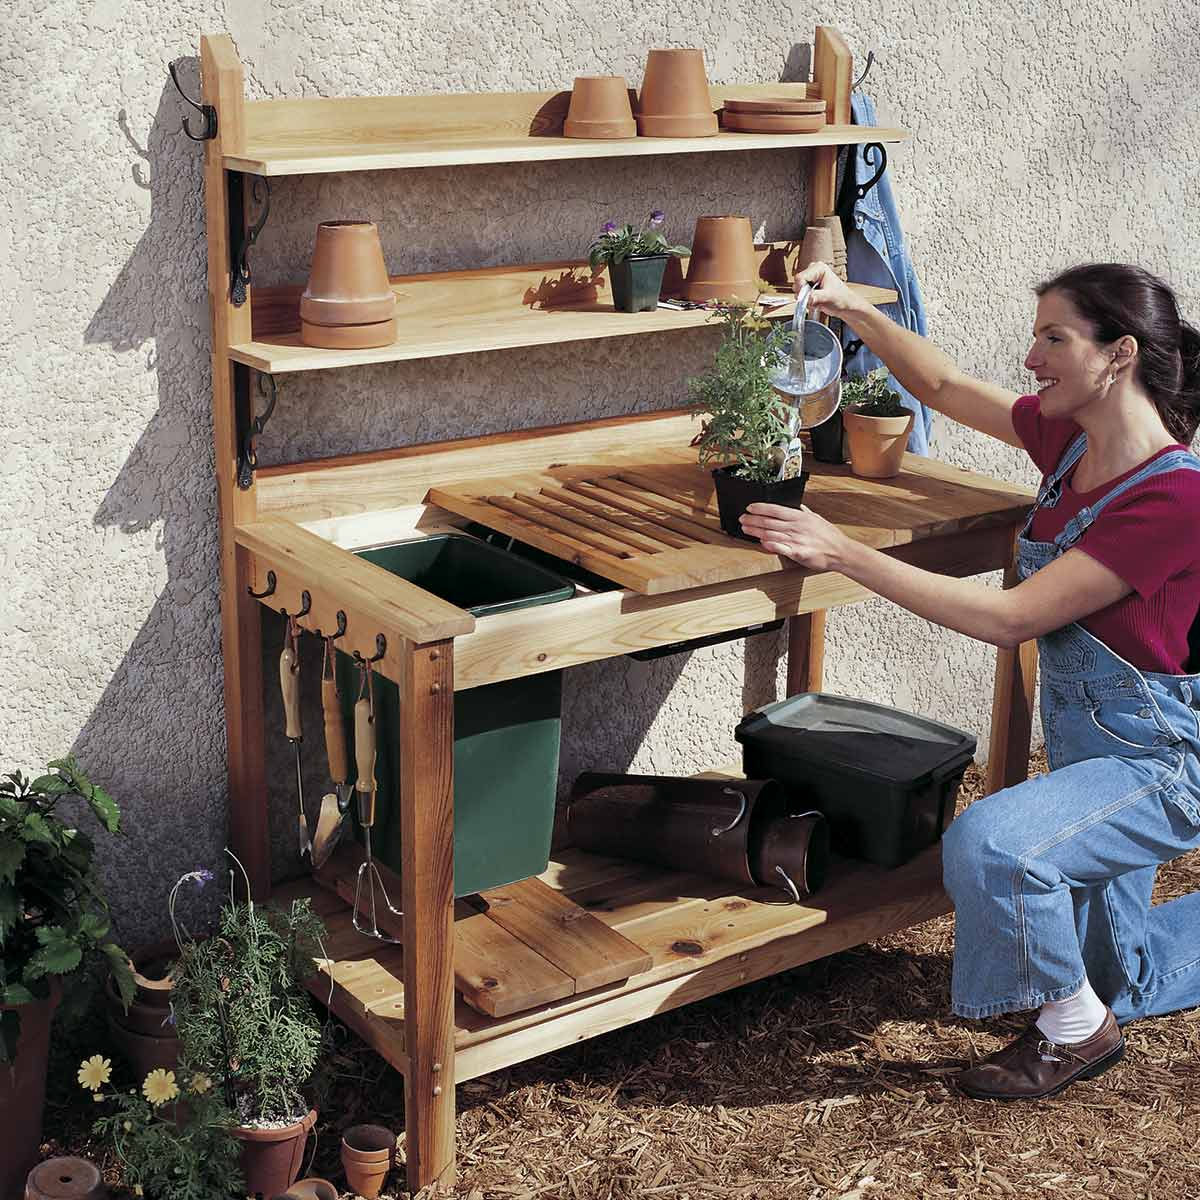 Factors considered during the making of the diy outdoor furniture